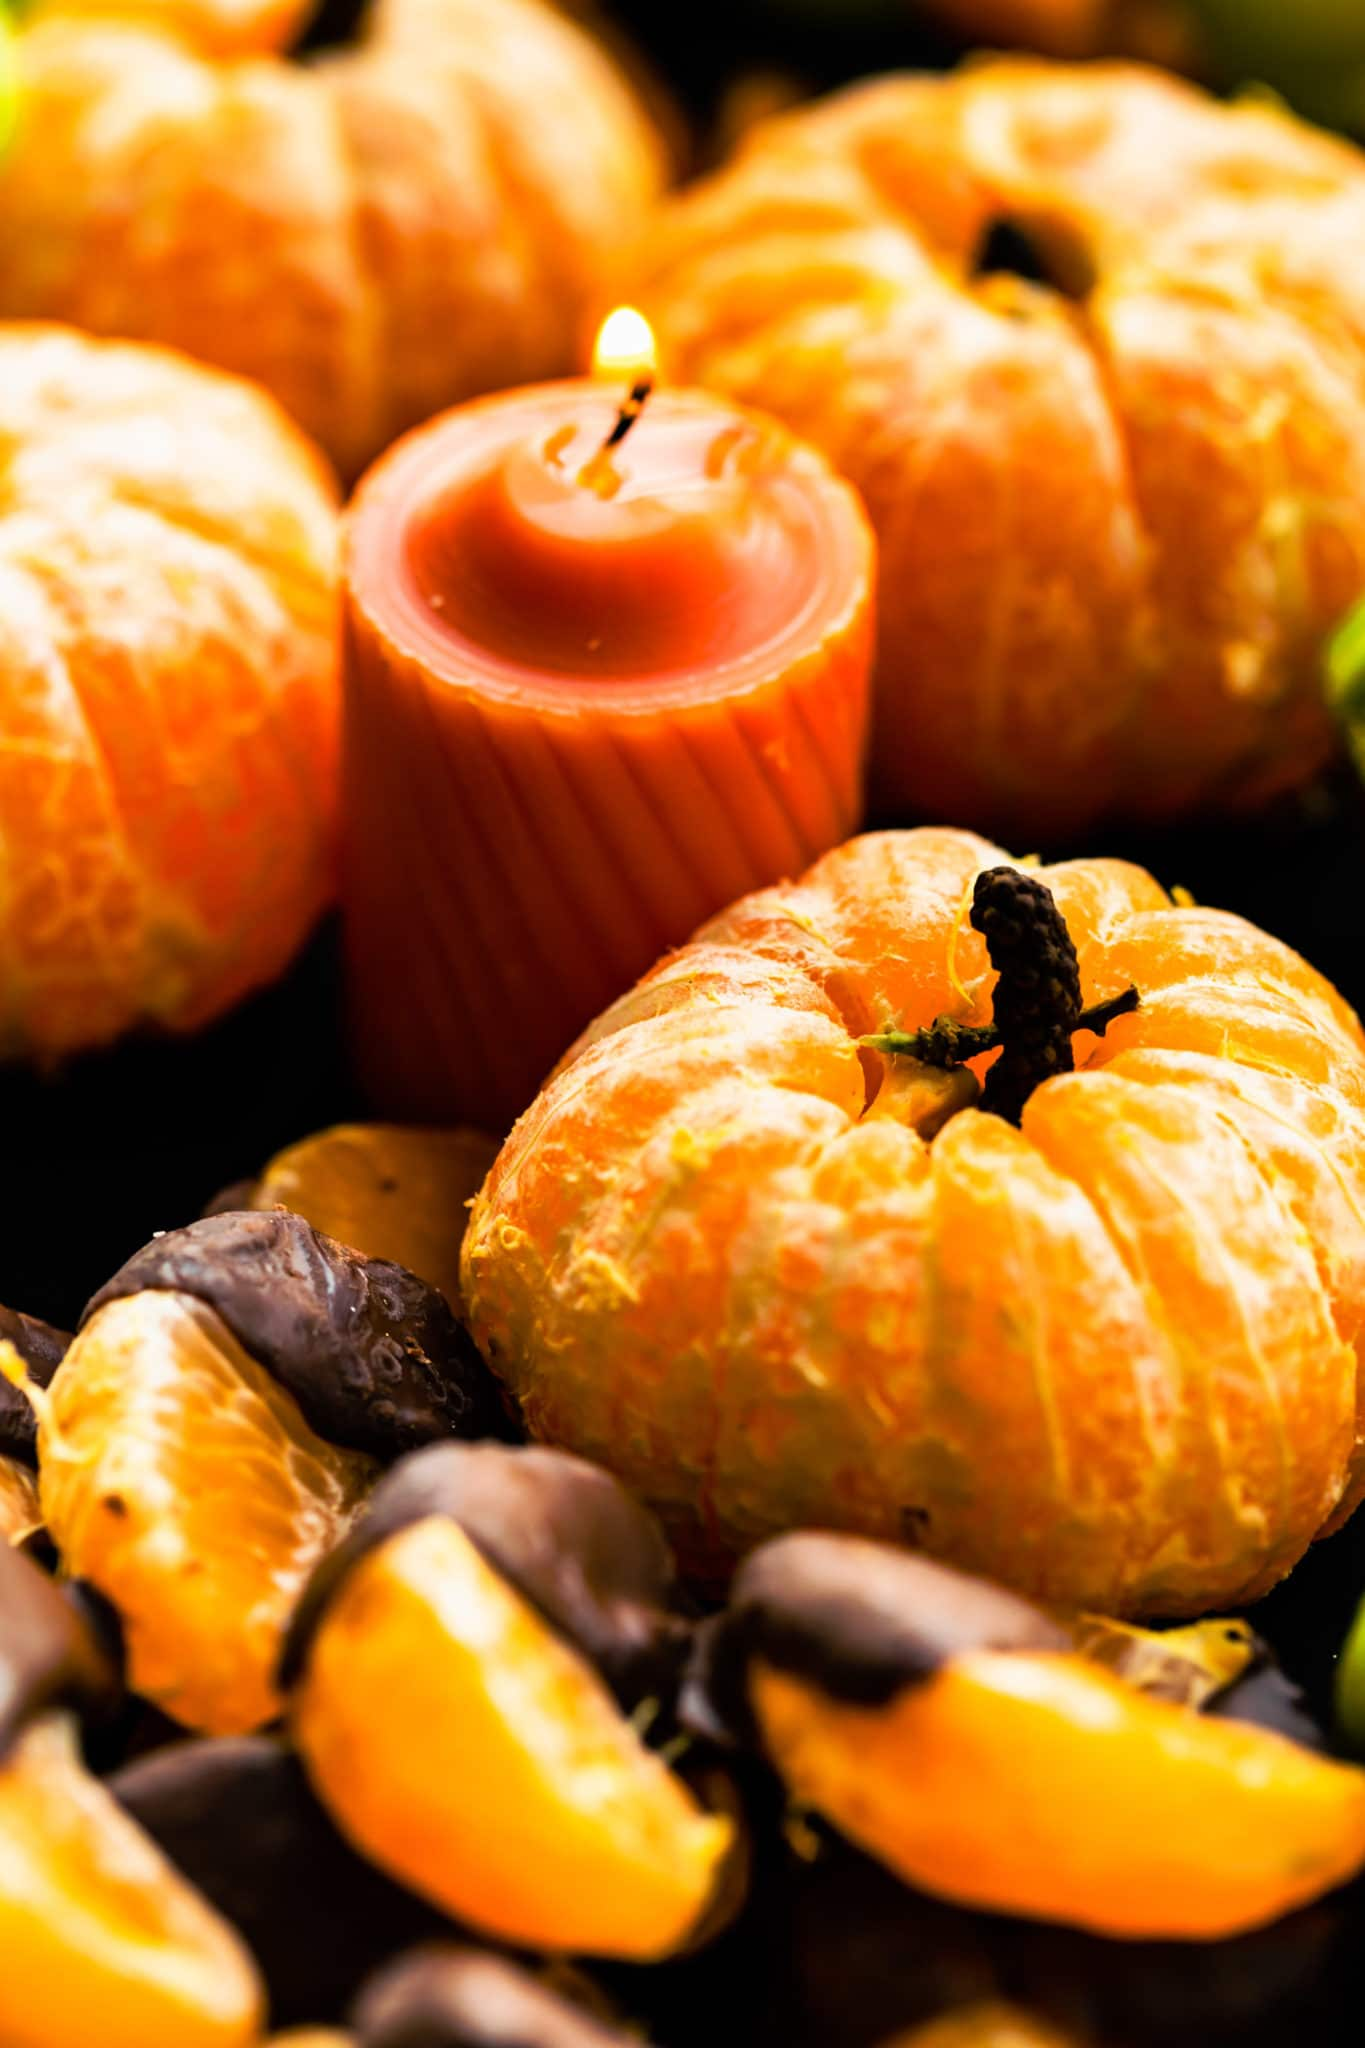 peeled oranges with peppercorn stems to resemble pumpkins and chocolate dipped orange slices